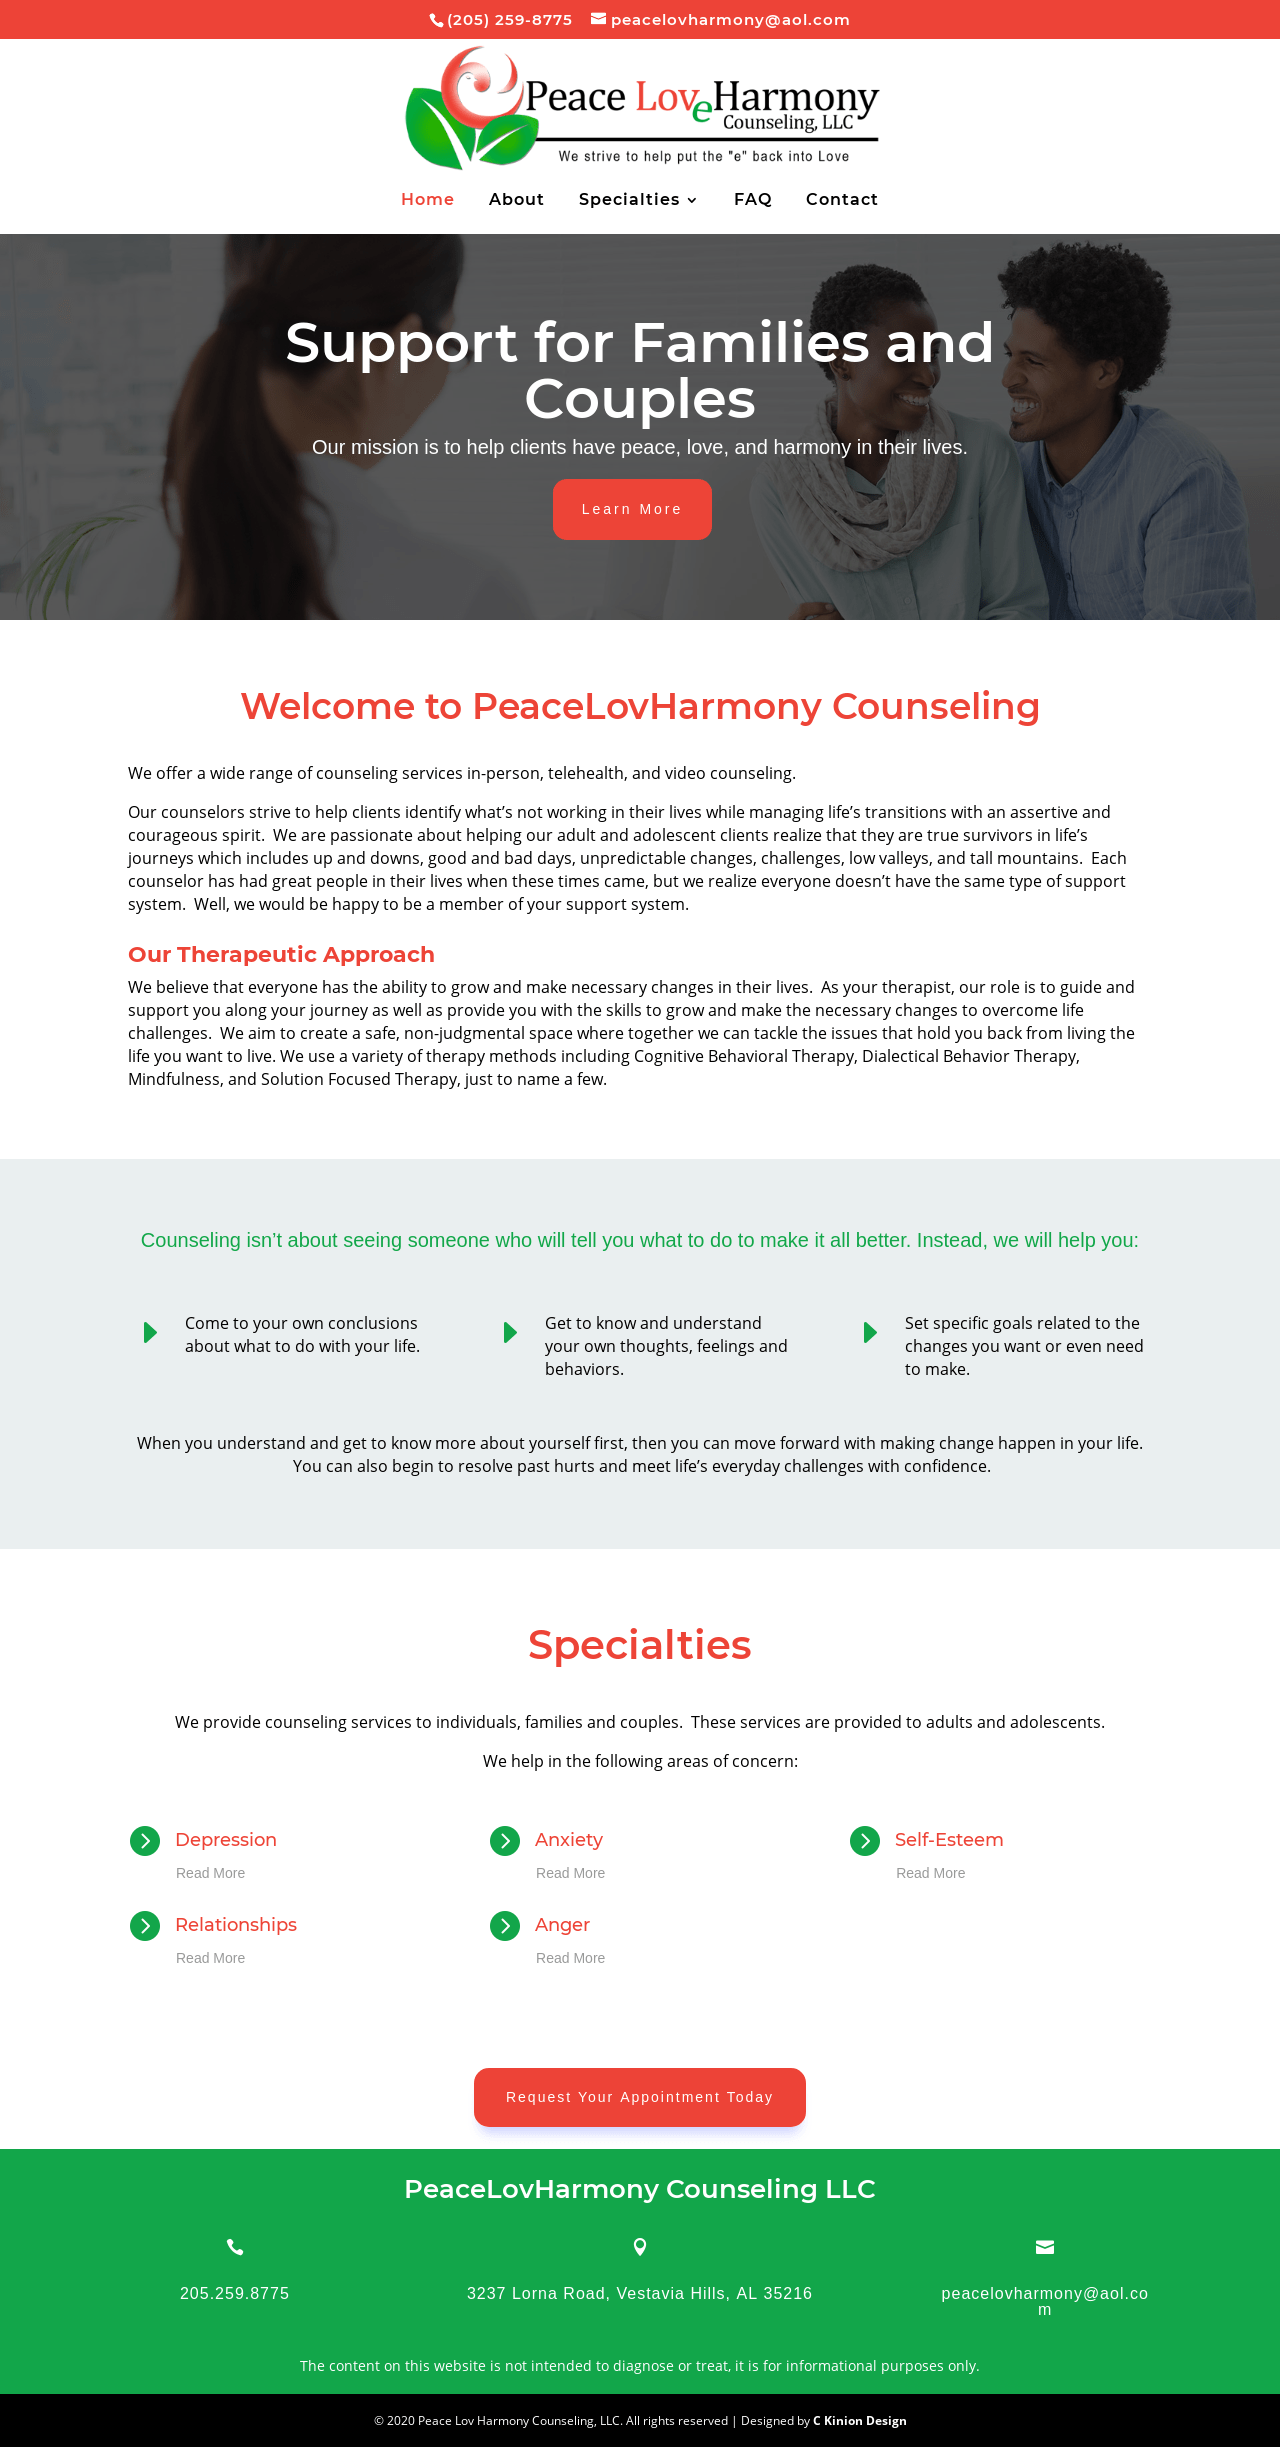 Birmingham-Web-Design-Agency-C-Kinion-Design- PeaceLovHarmony Counseling-Full Page